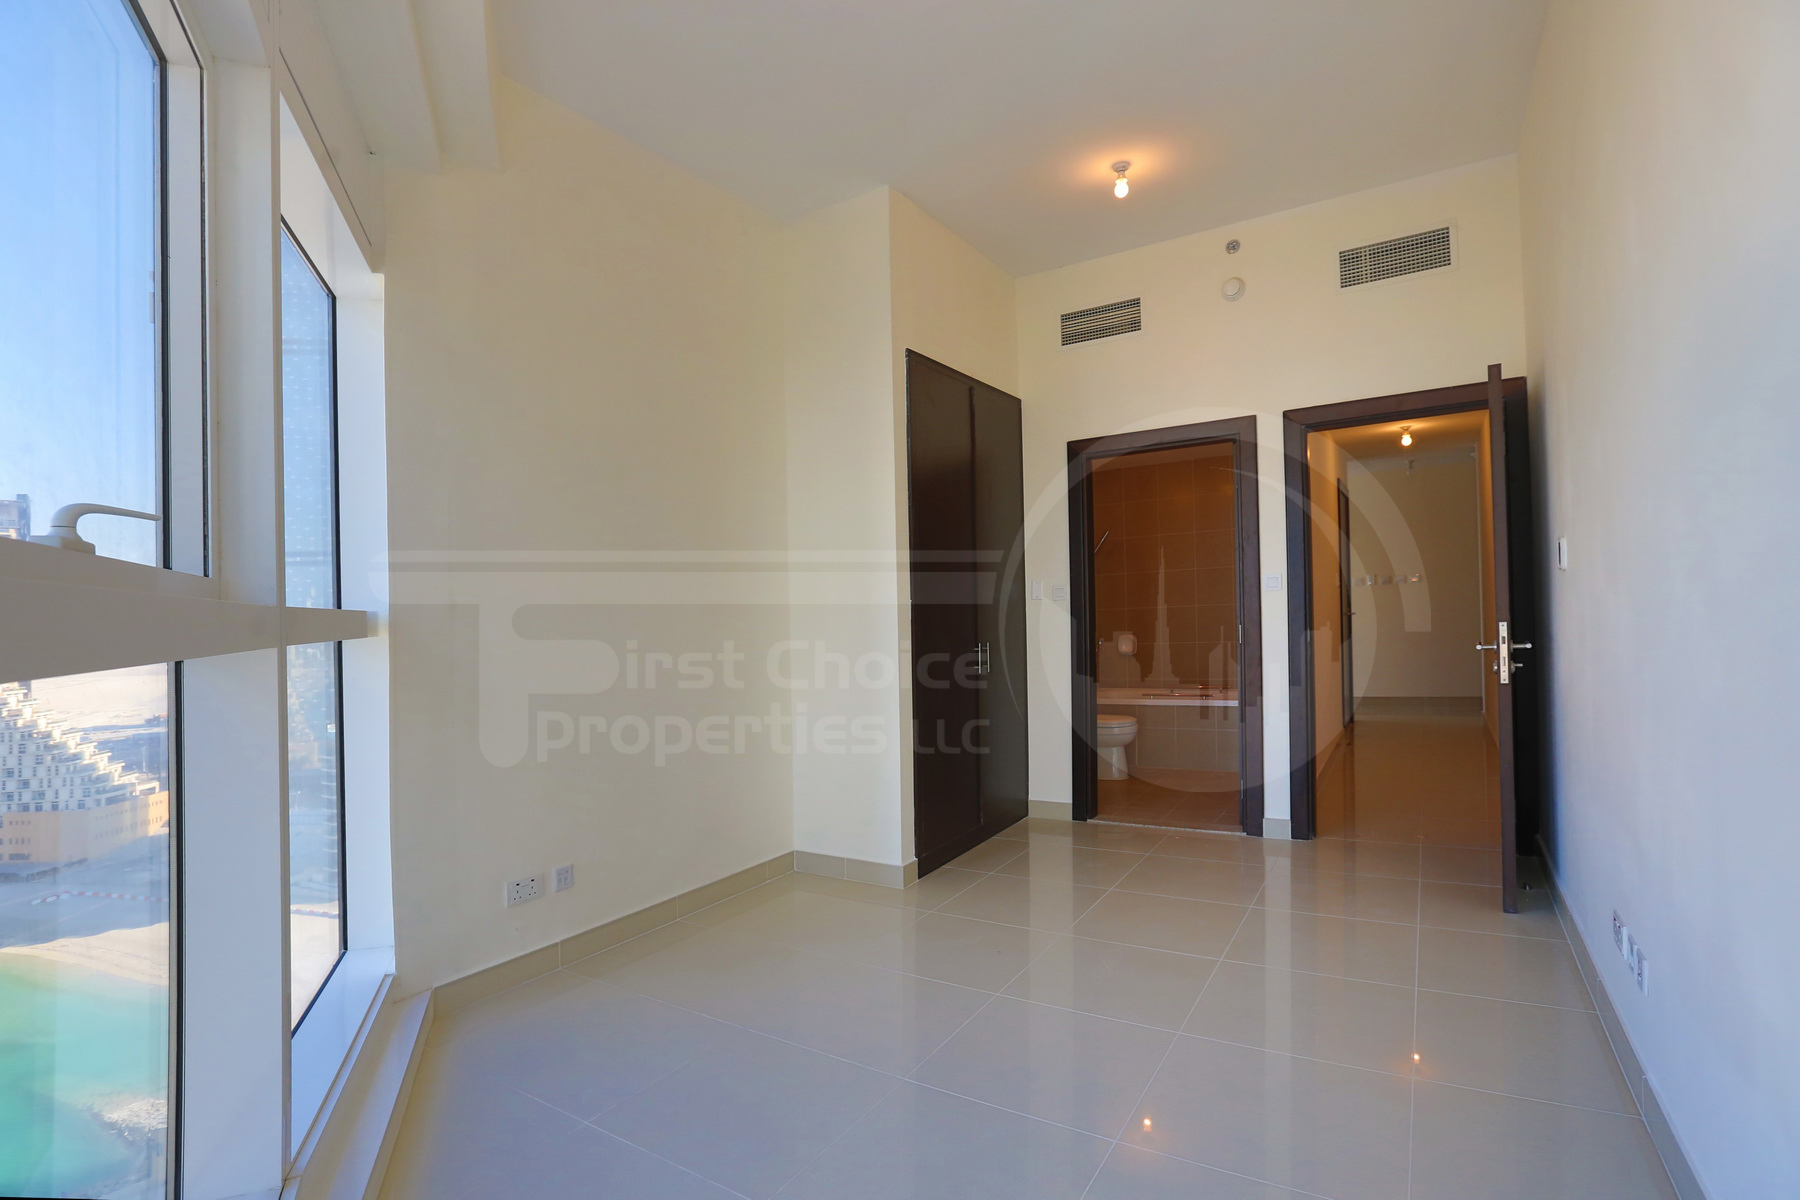 2BR Apartment - Abu Dhabi - UAE - Al Reem Island - City of Lights - C10 Building (44).JPG